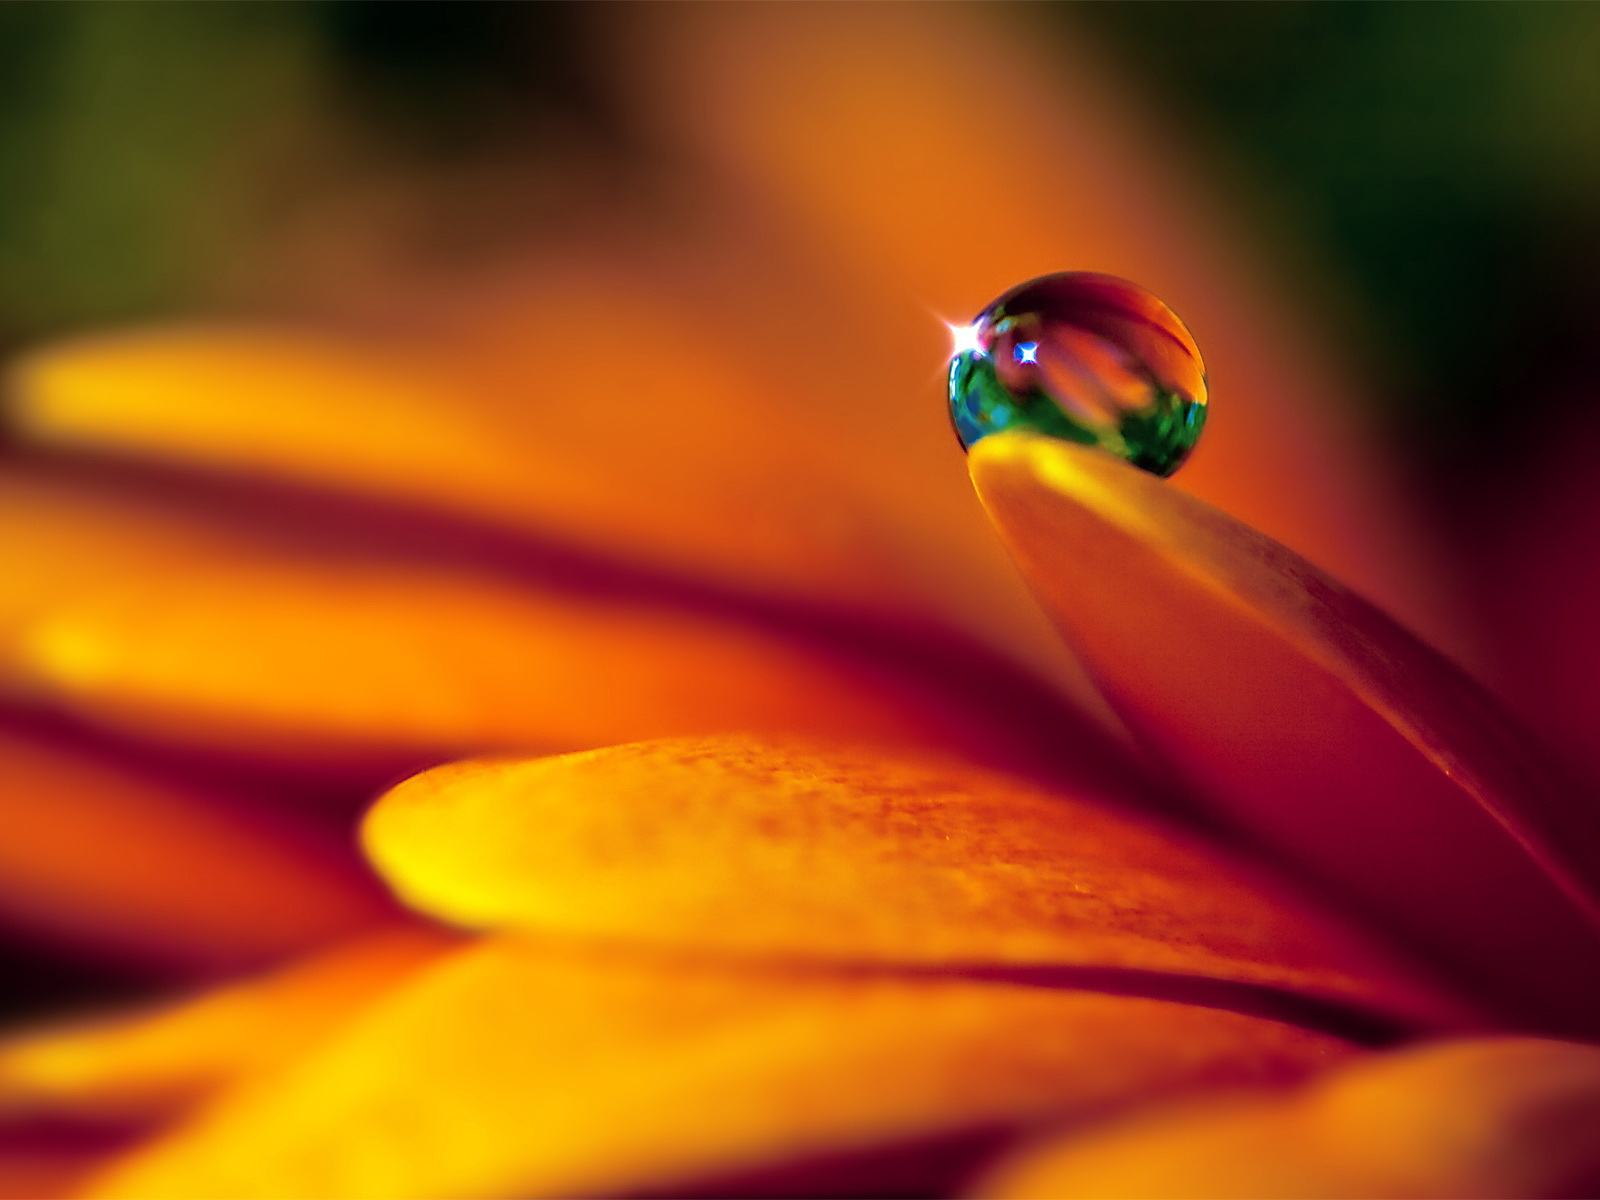 148837_Crystal-Water-Flower-Nature-Background-Wallpapers_1600x1200